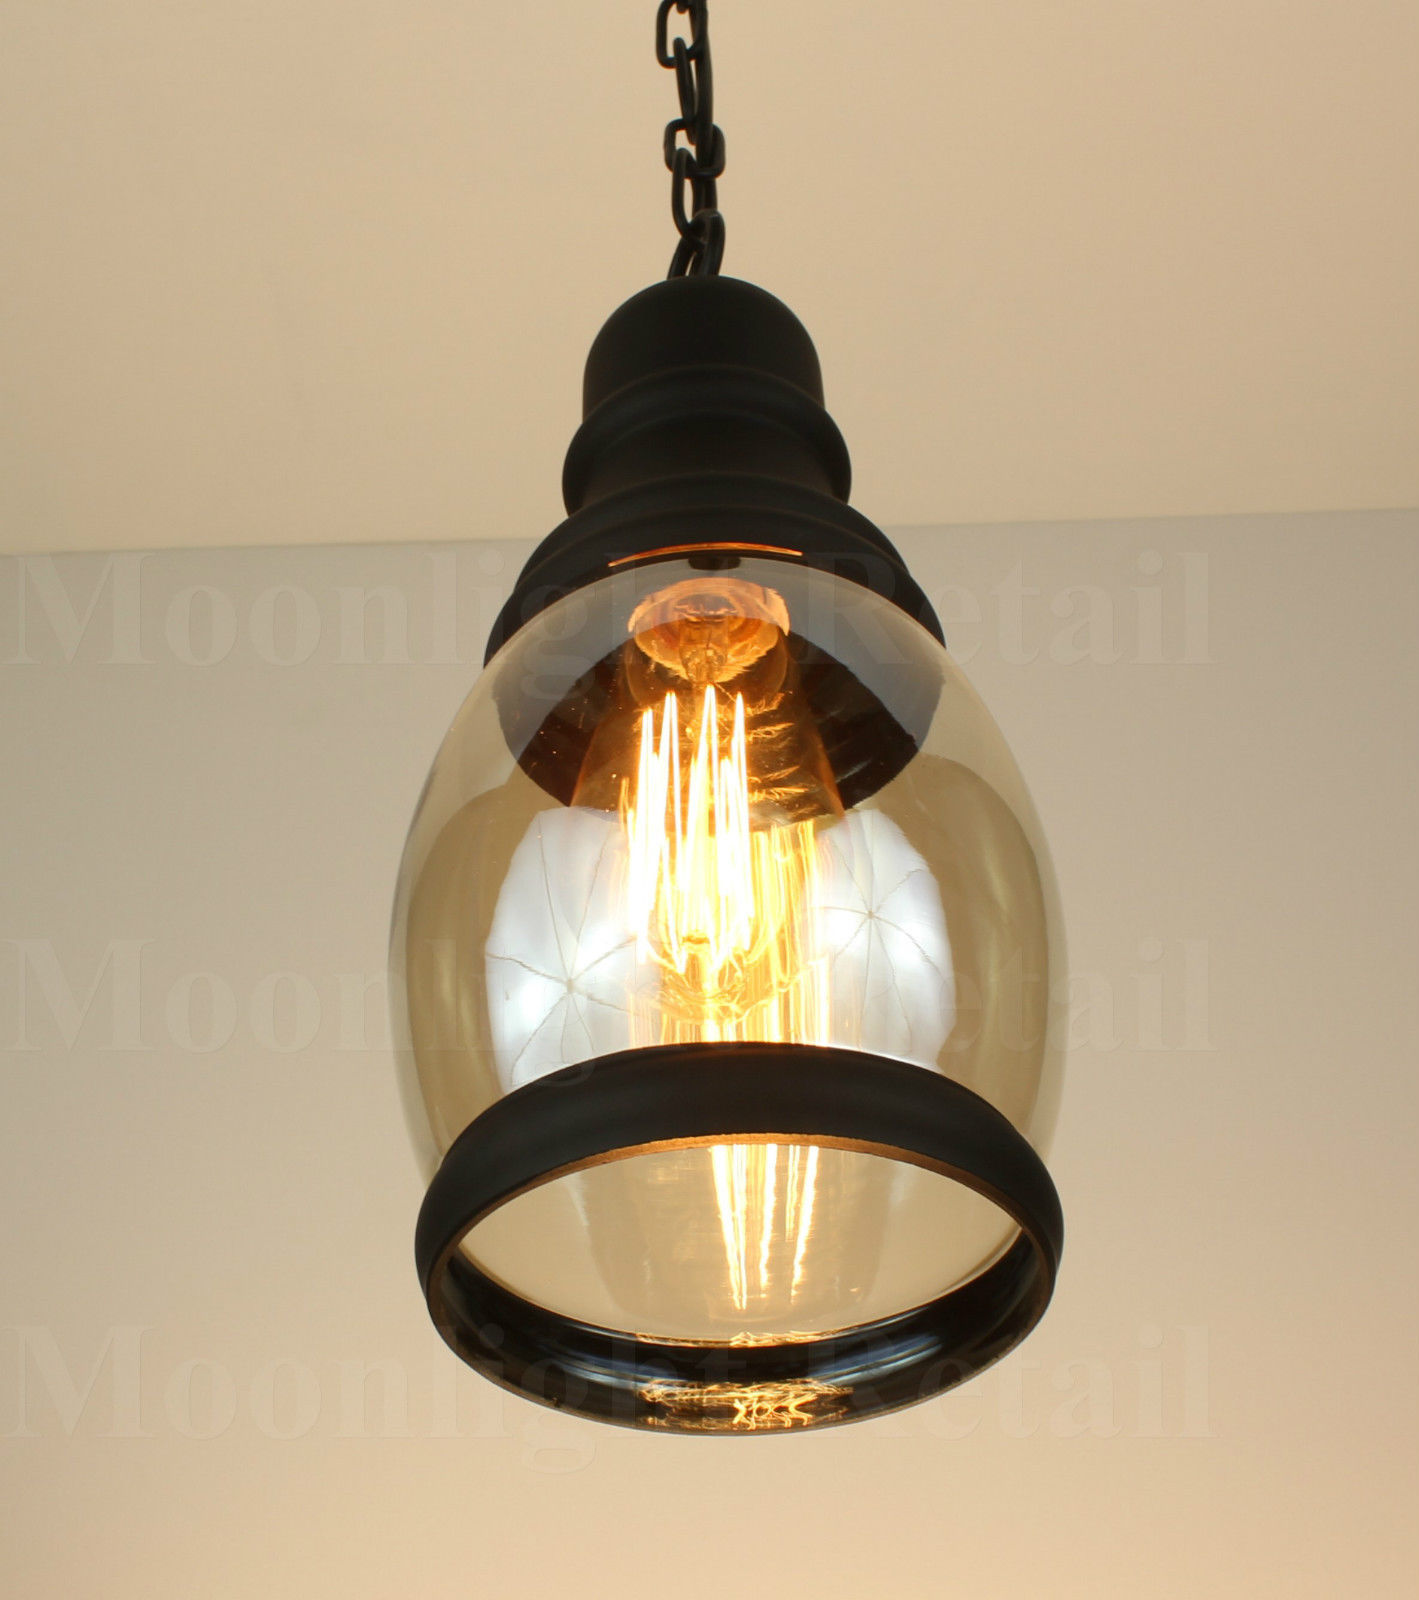 New Vintage Industrial Retro Loft Amber Glass Shade